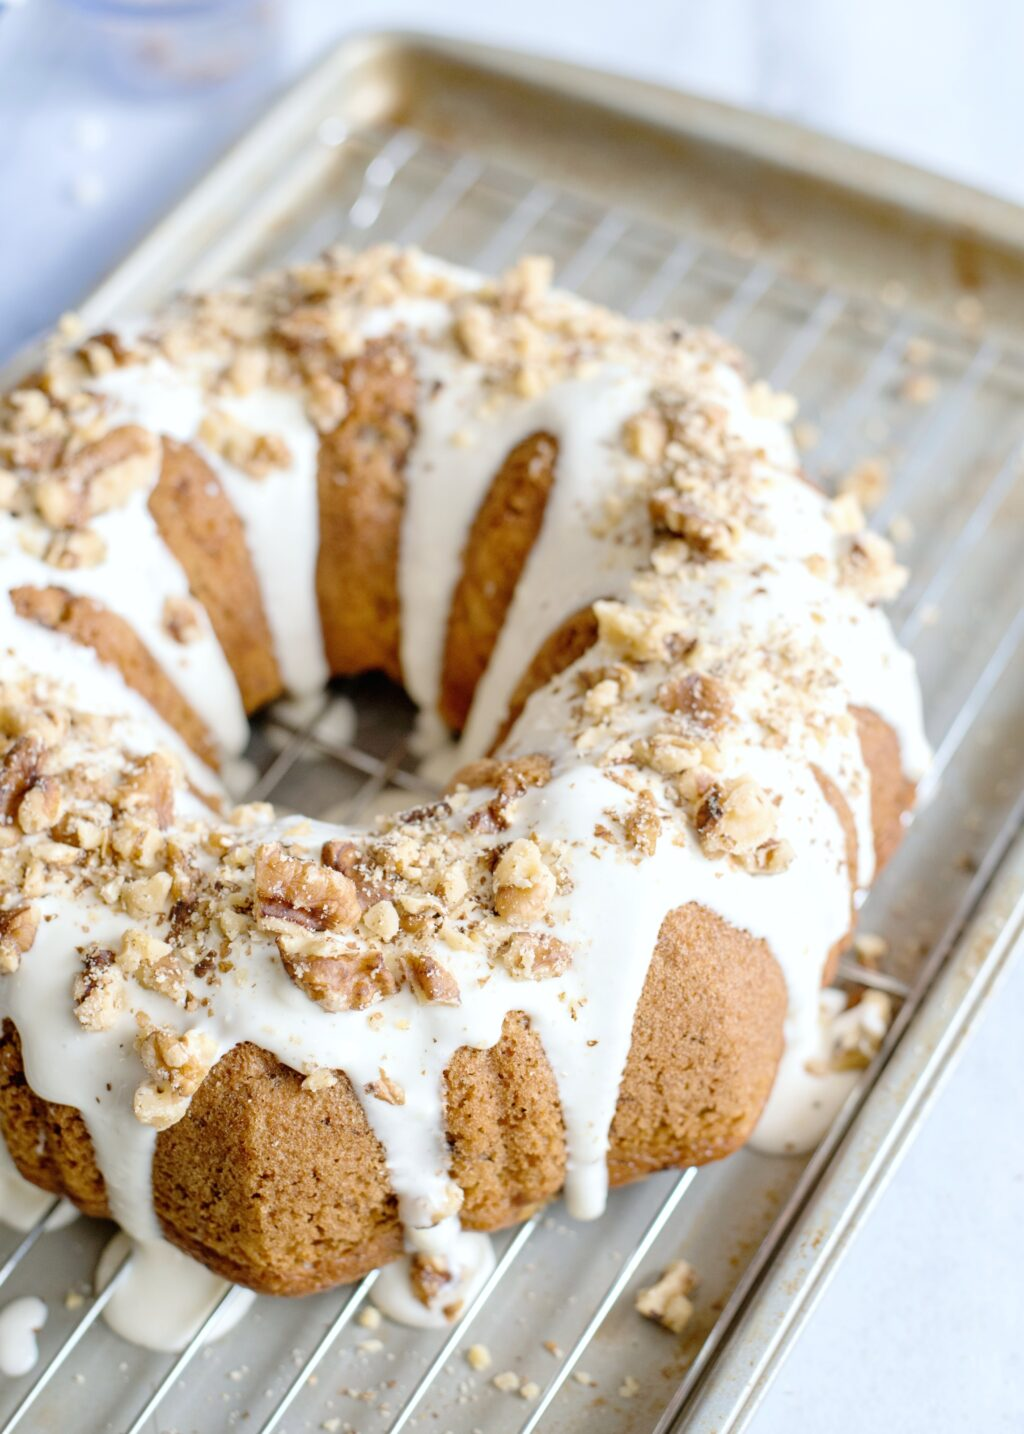 Bundt cake being drizzled with glaze and walnuts.